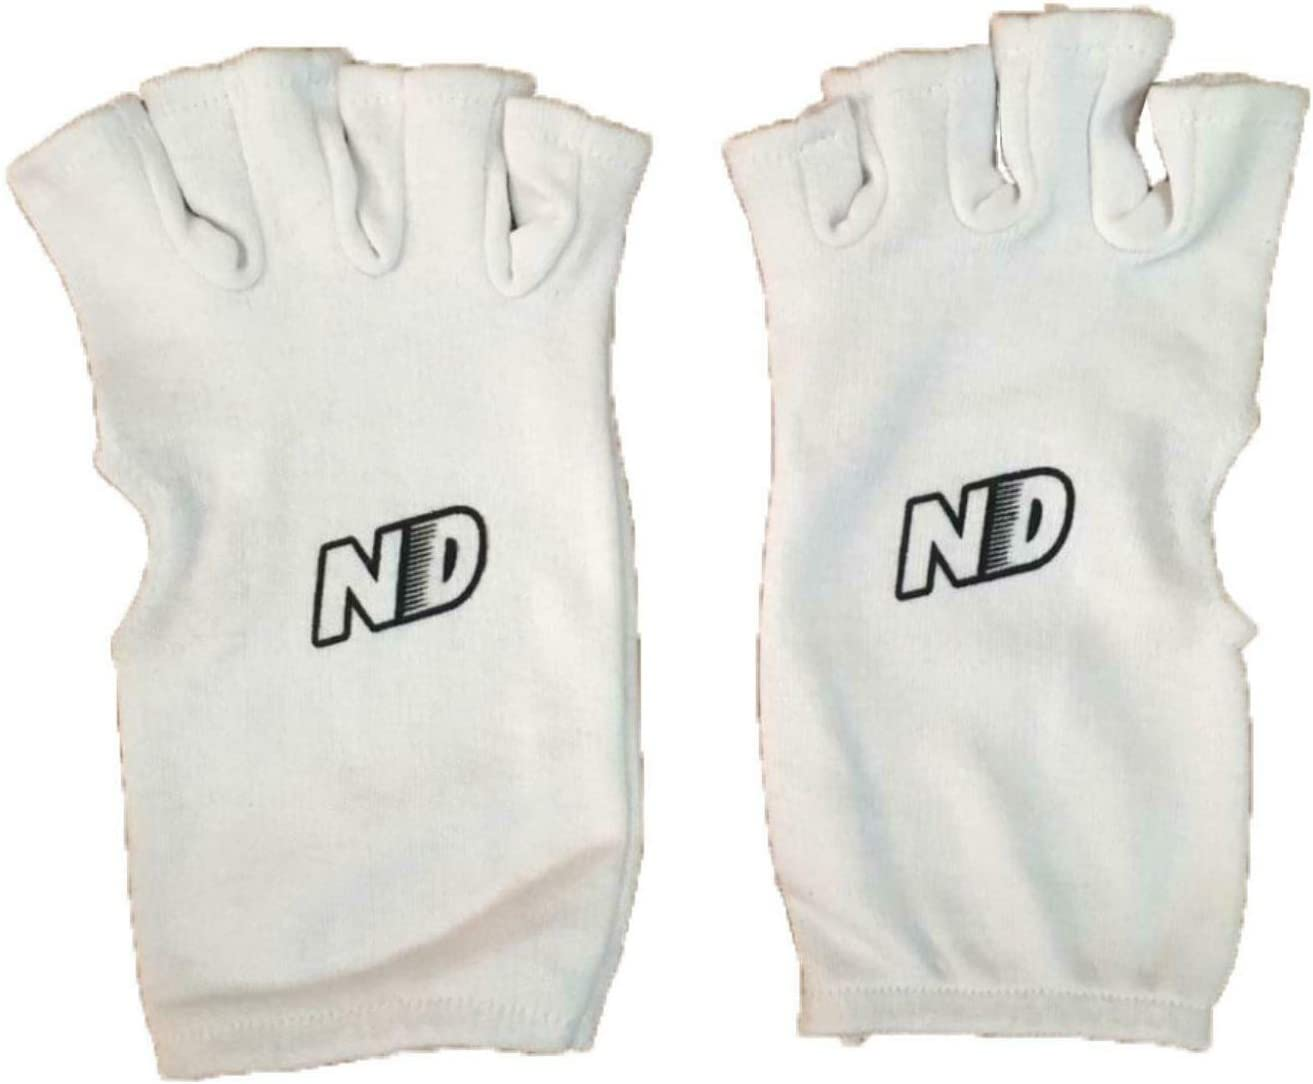 Cotton Inner Gloves Youths or Adult ND Cricket Fingerless Batting Inners